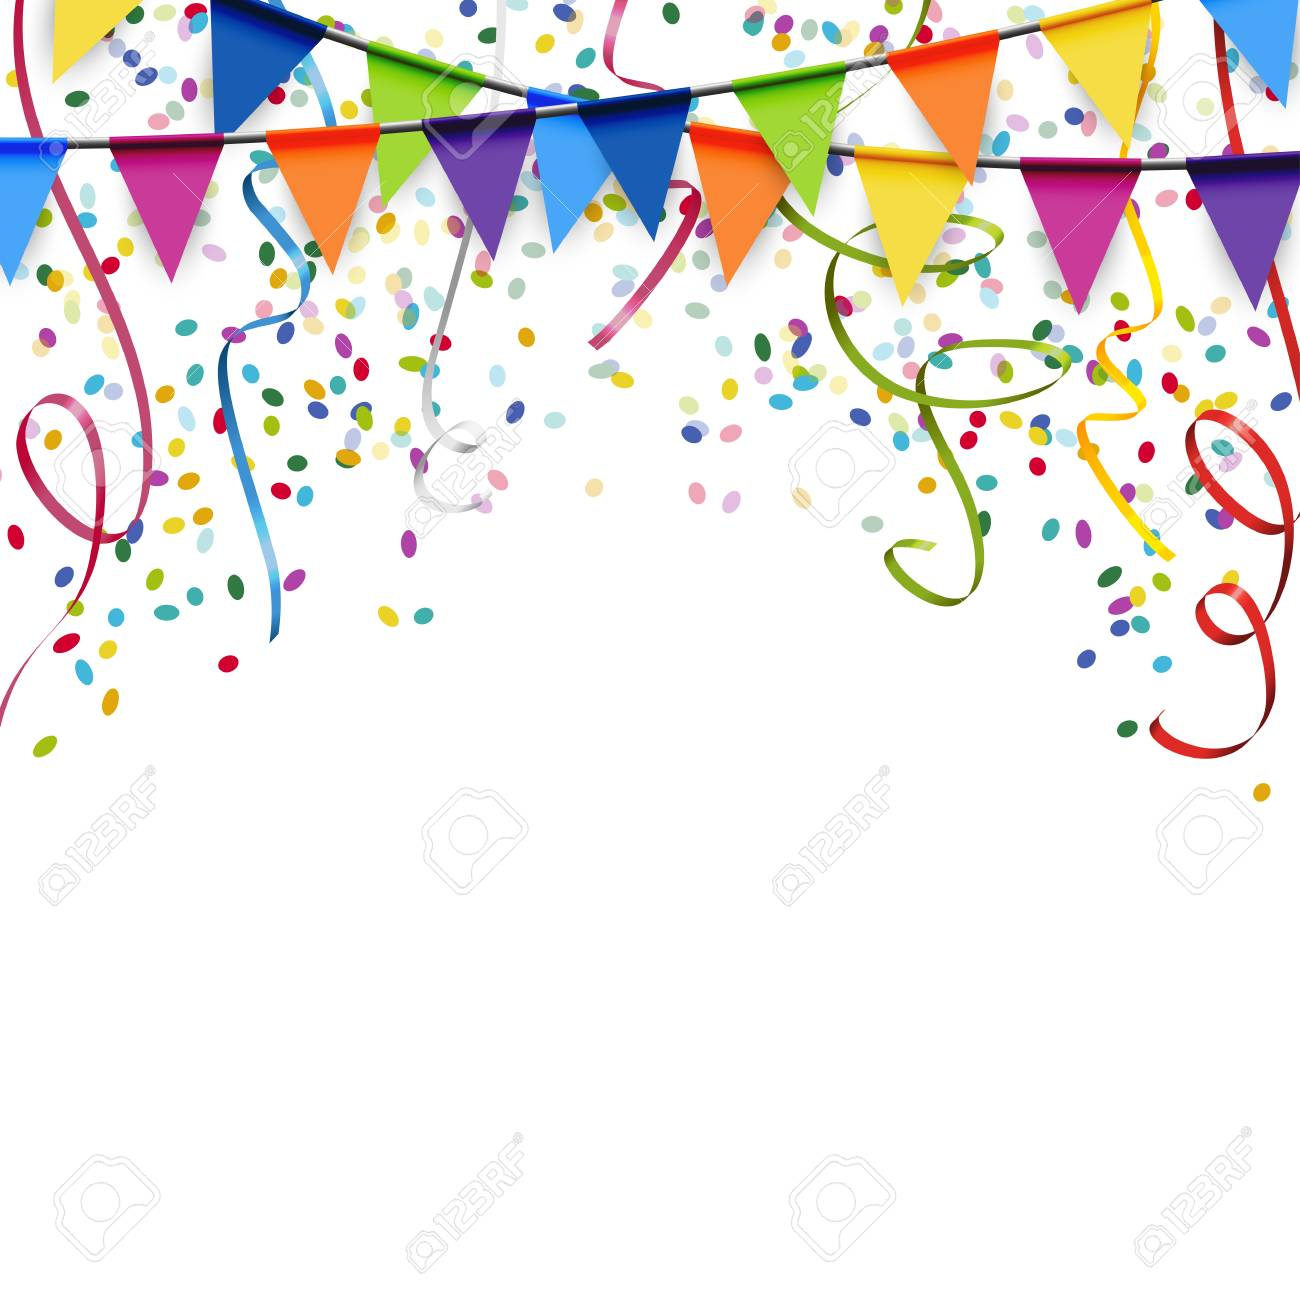 colored garlands, streamers and confetti background for party...